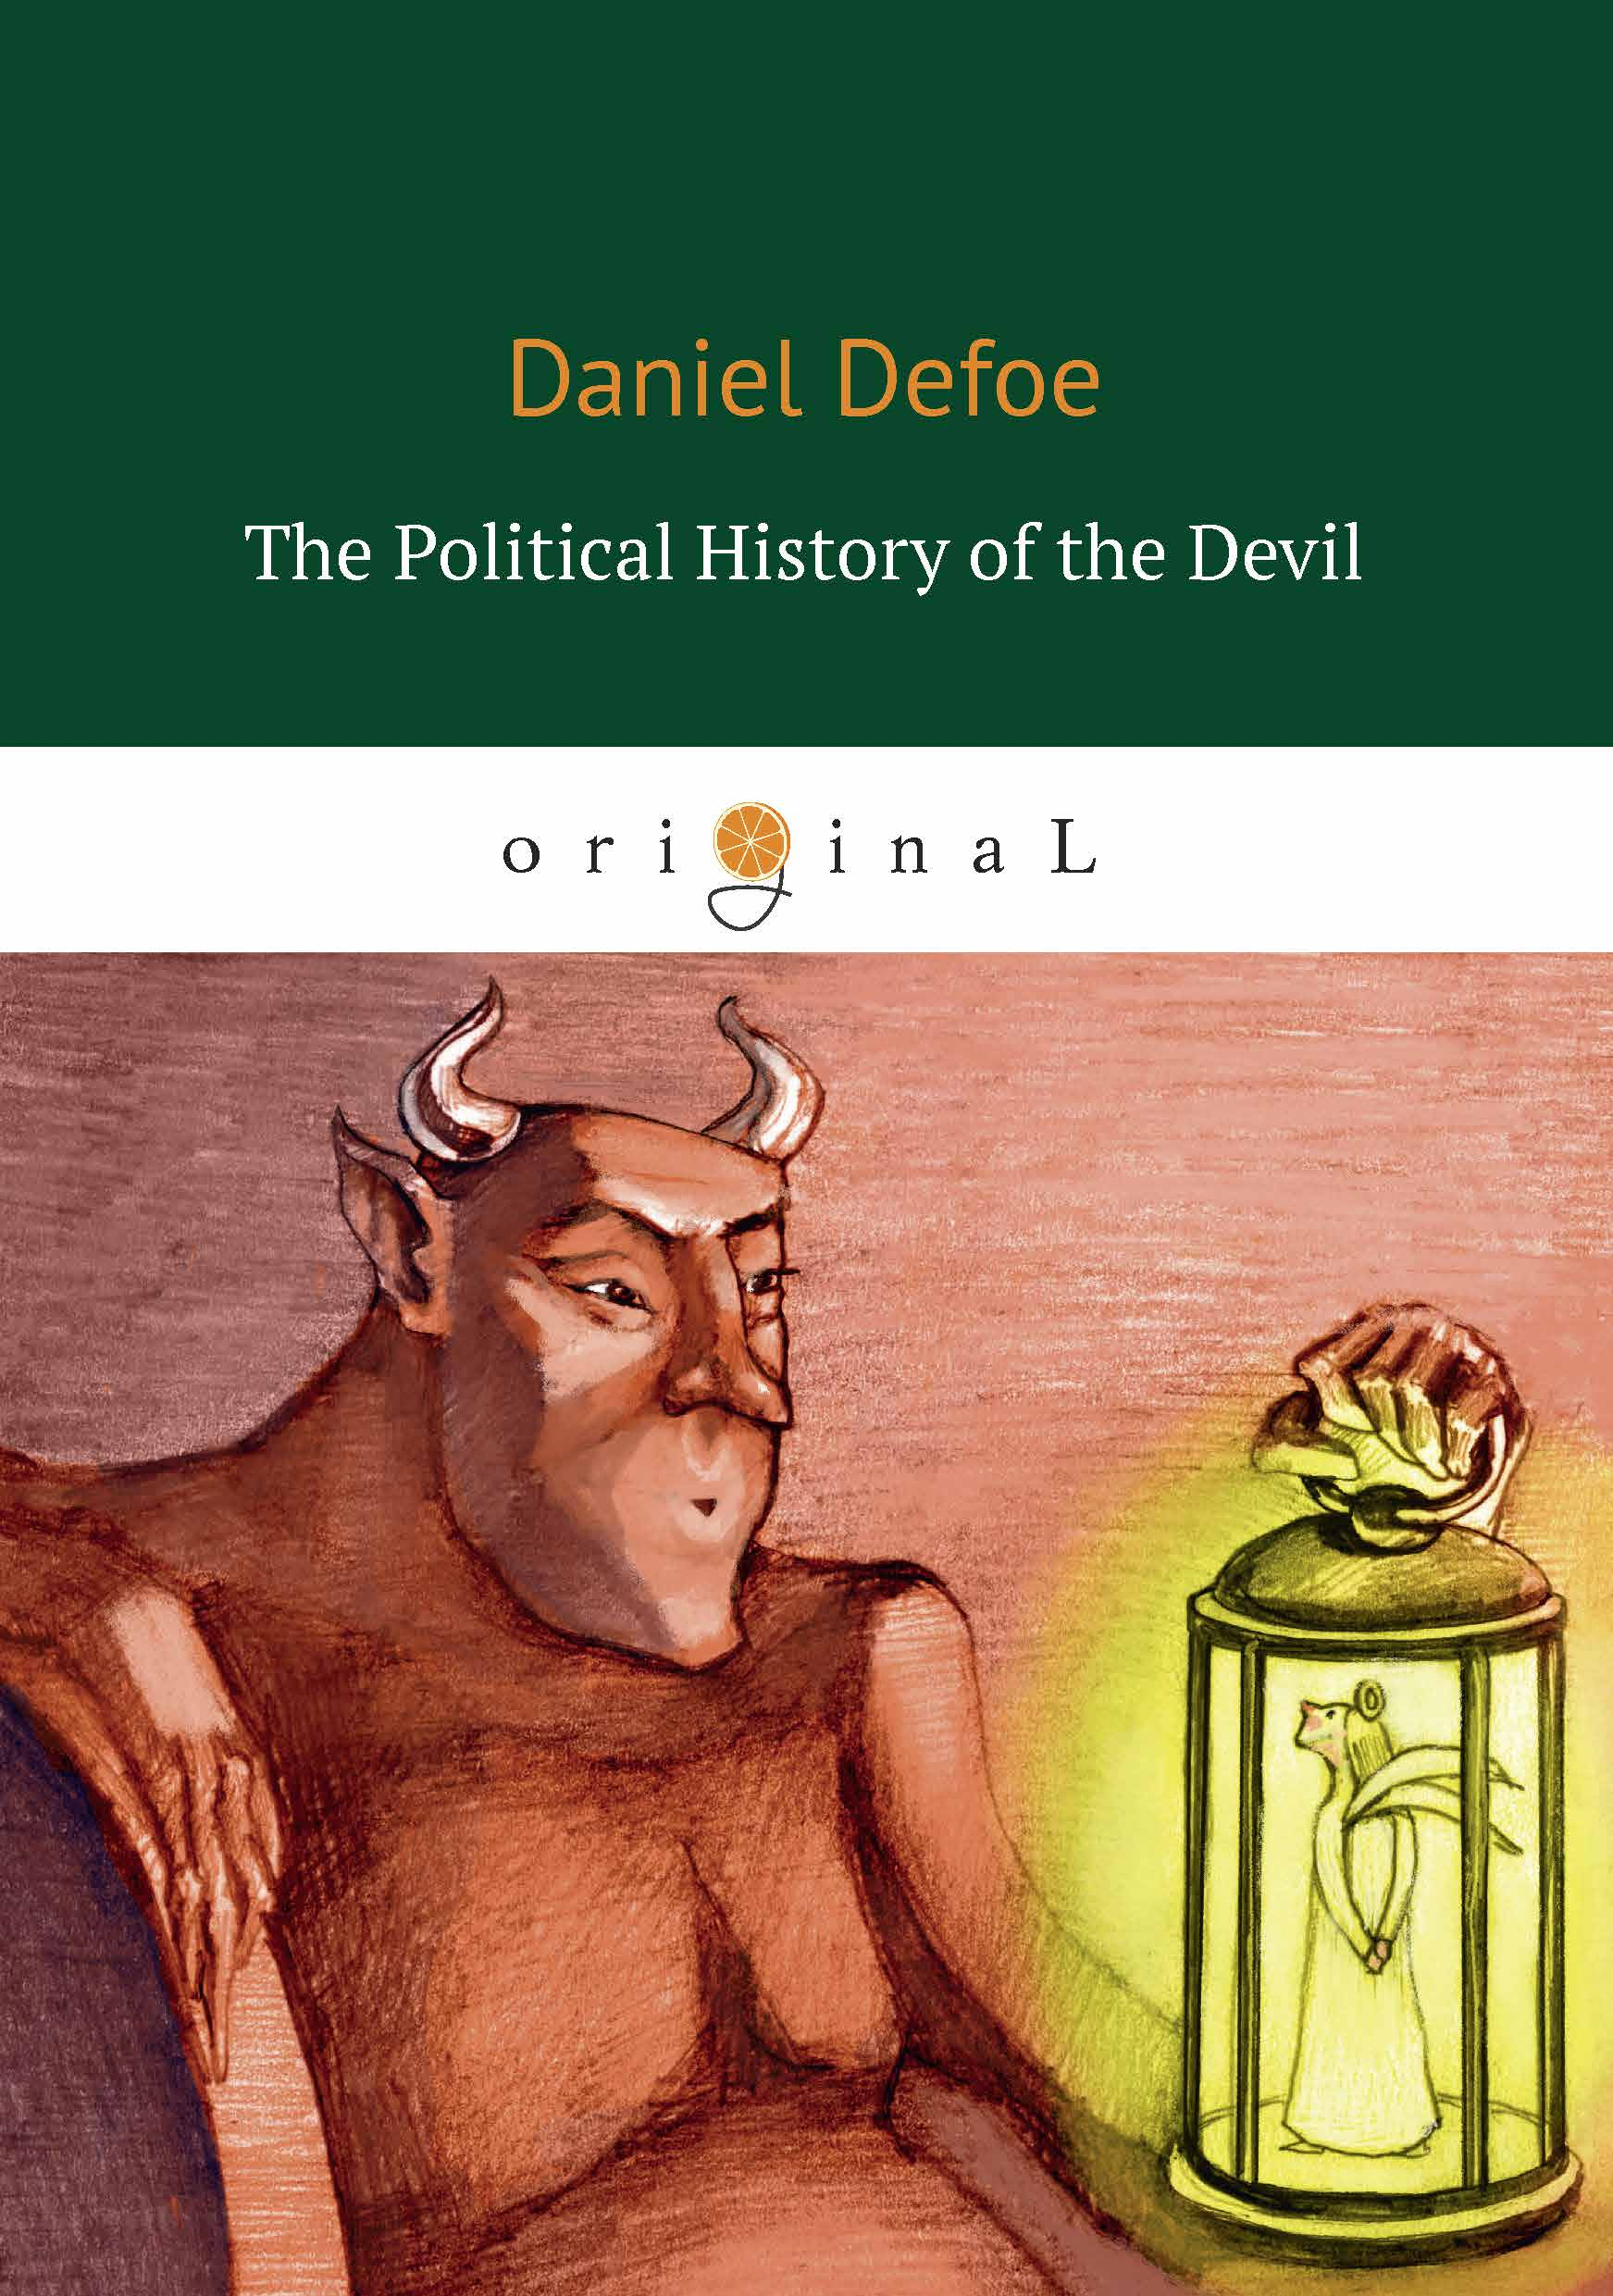 Defoe D. The Political History of the Devil weisberger l weisberger the devil wears prada page 5